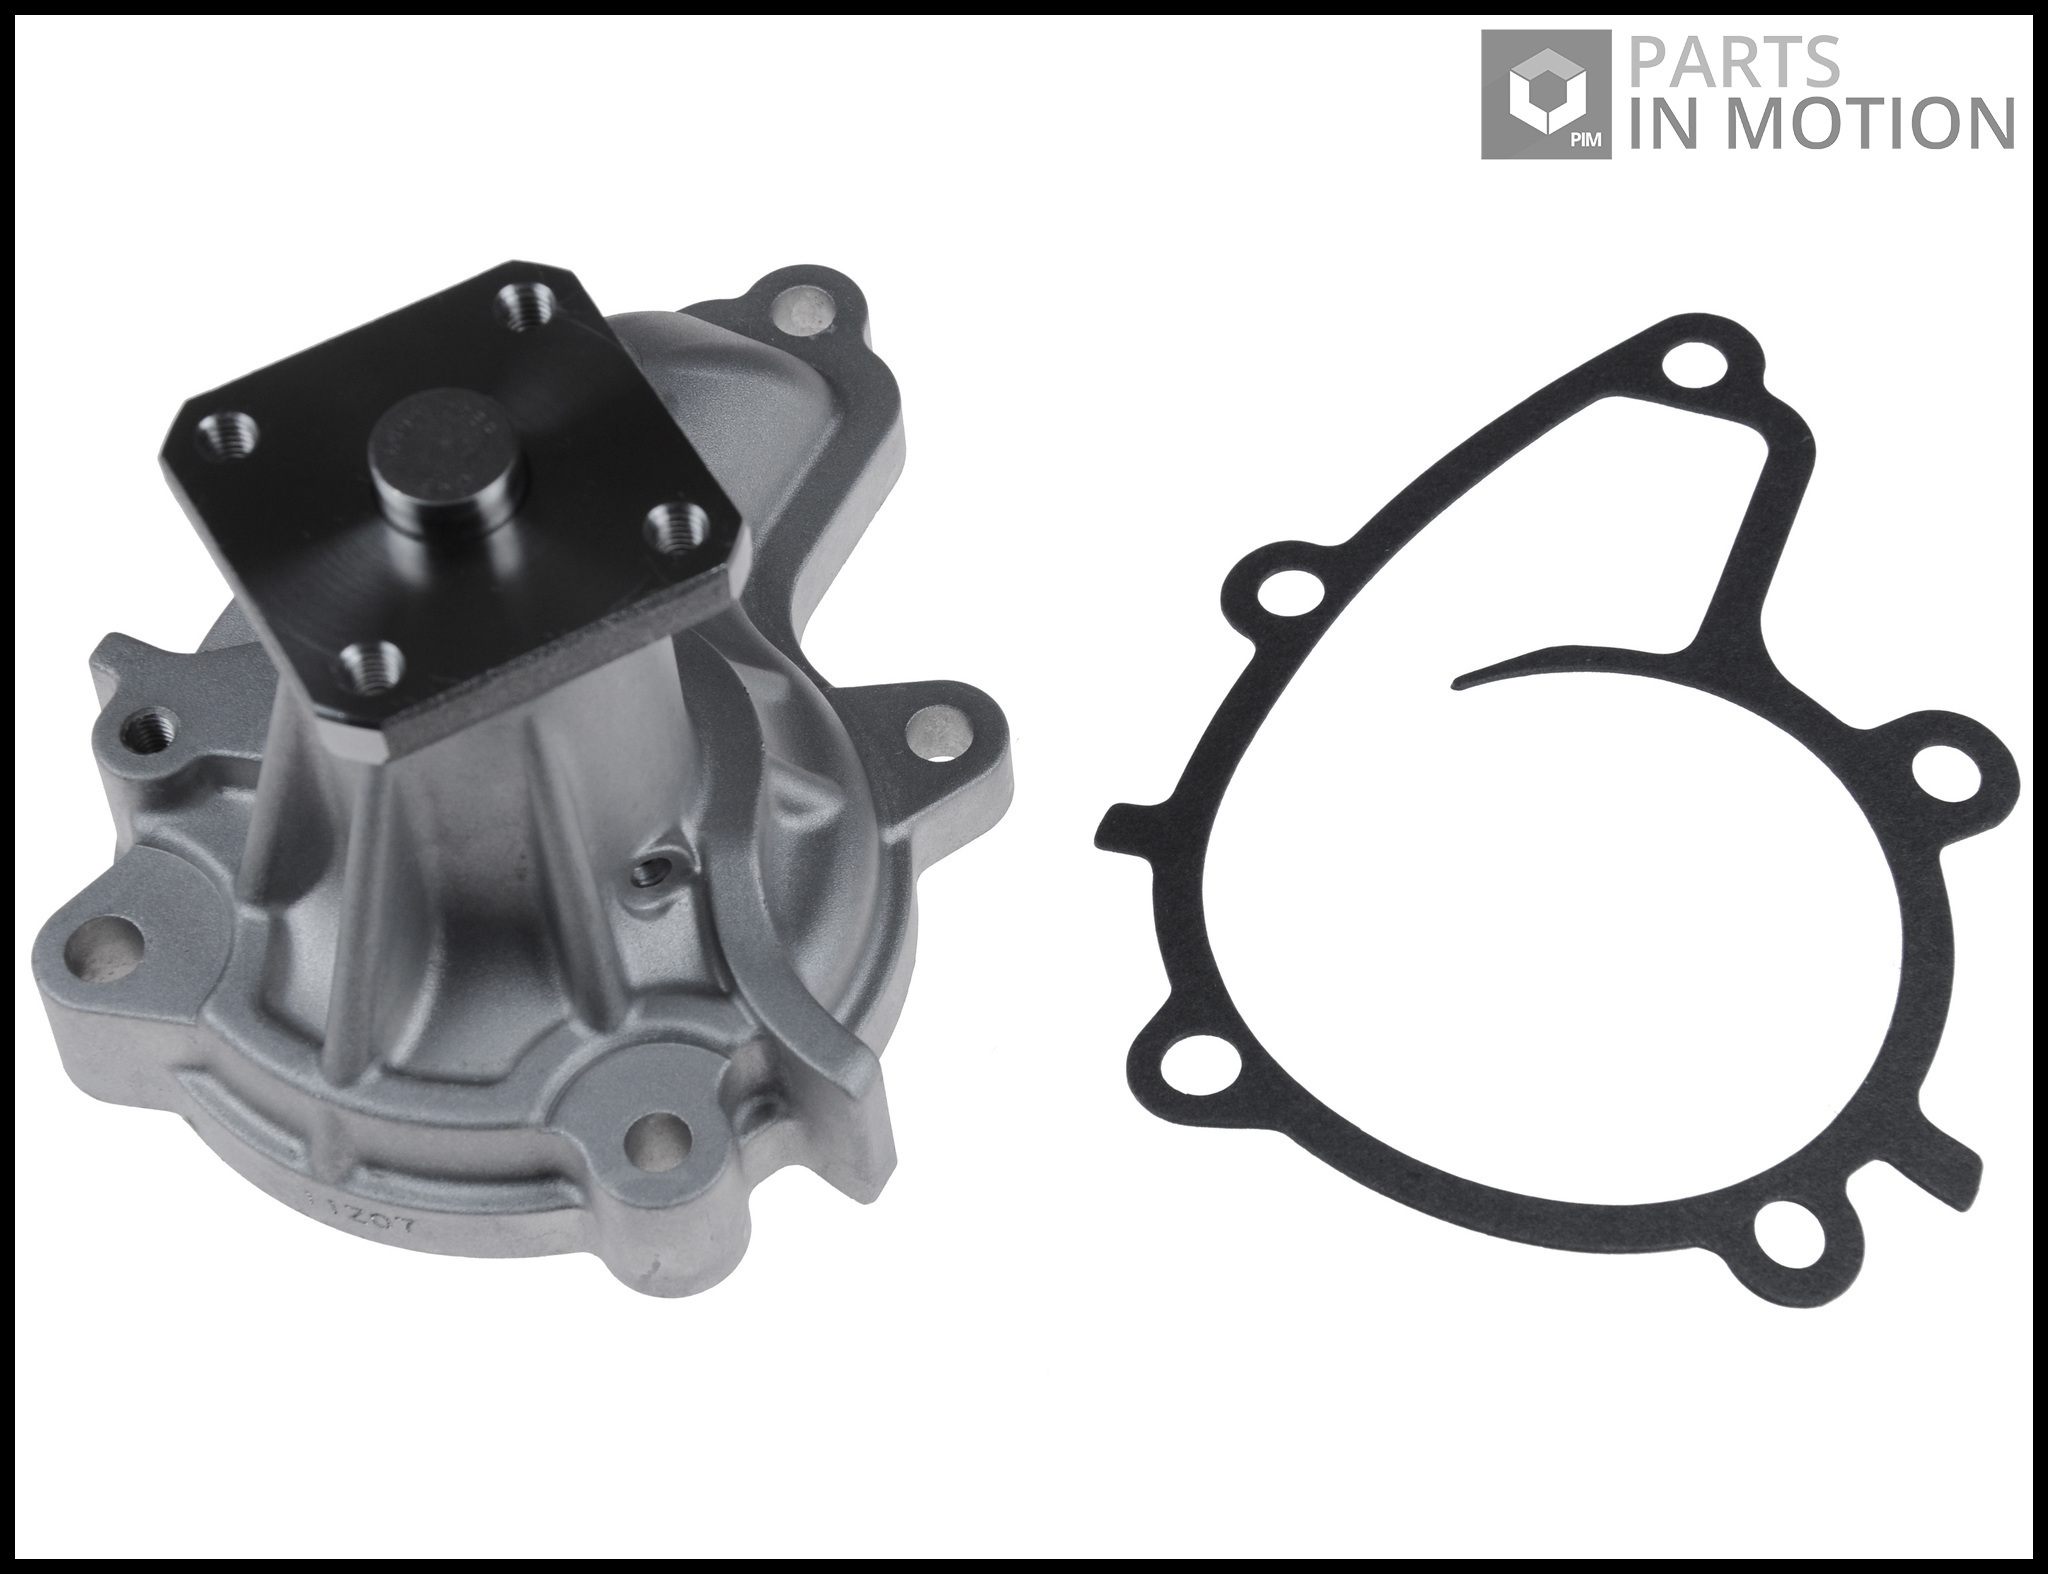 Special Water Pump Fits Nissan Primera P10 2 0d 91 to 96 Cd20 Coolant Adl New